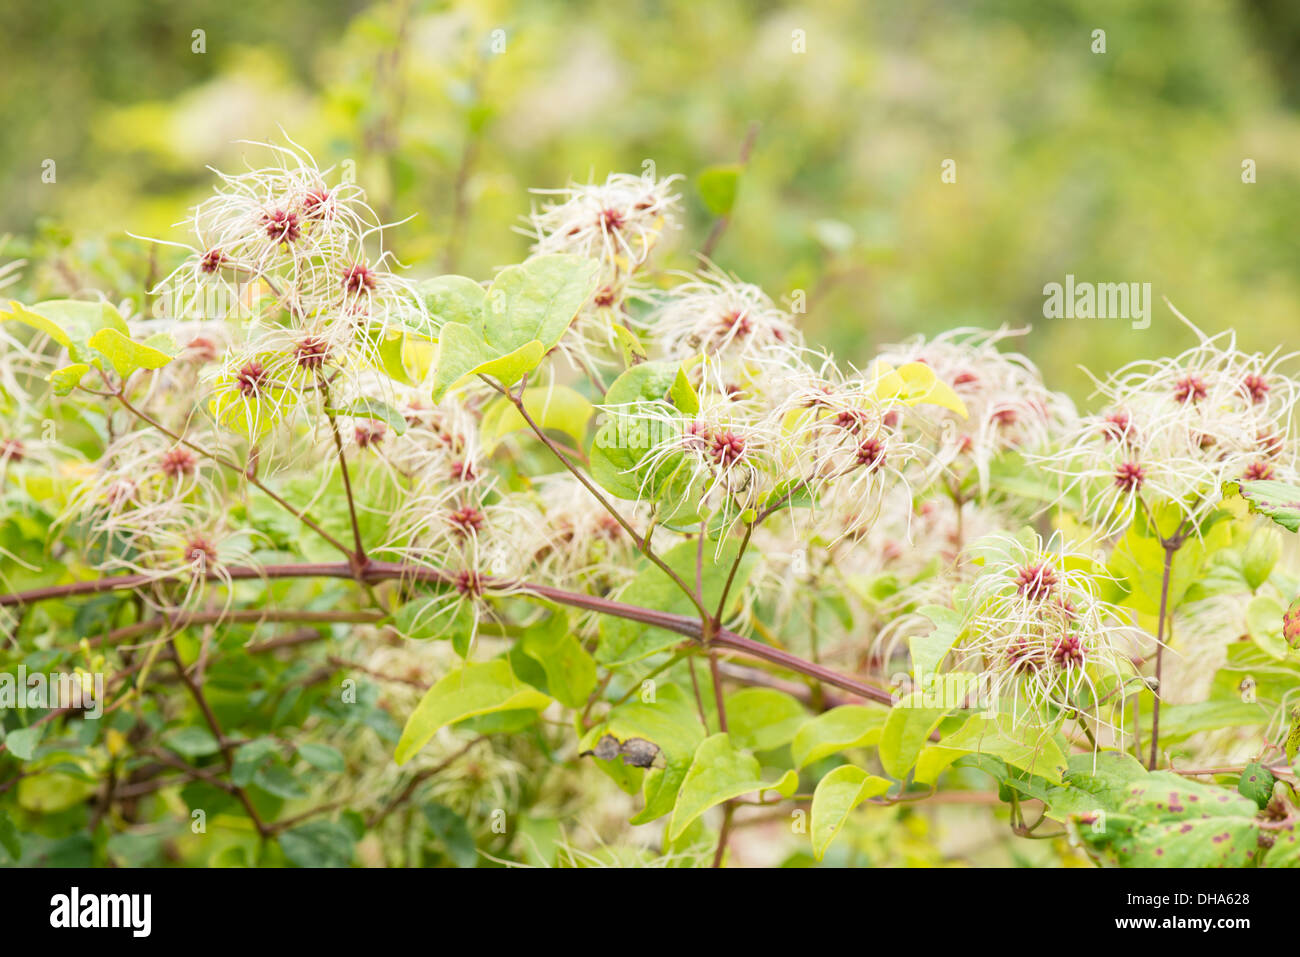 Old Man's Beard in fruit at Durlston Country Park Dorset - Stock Image